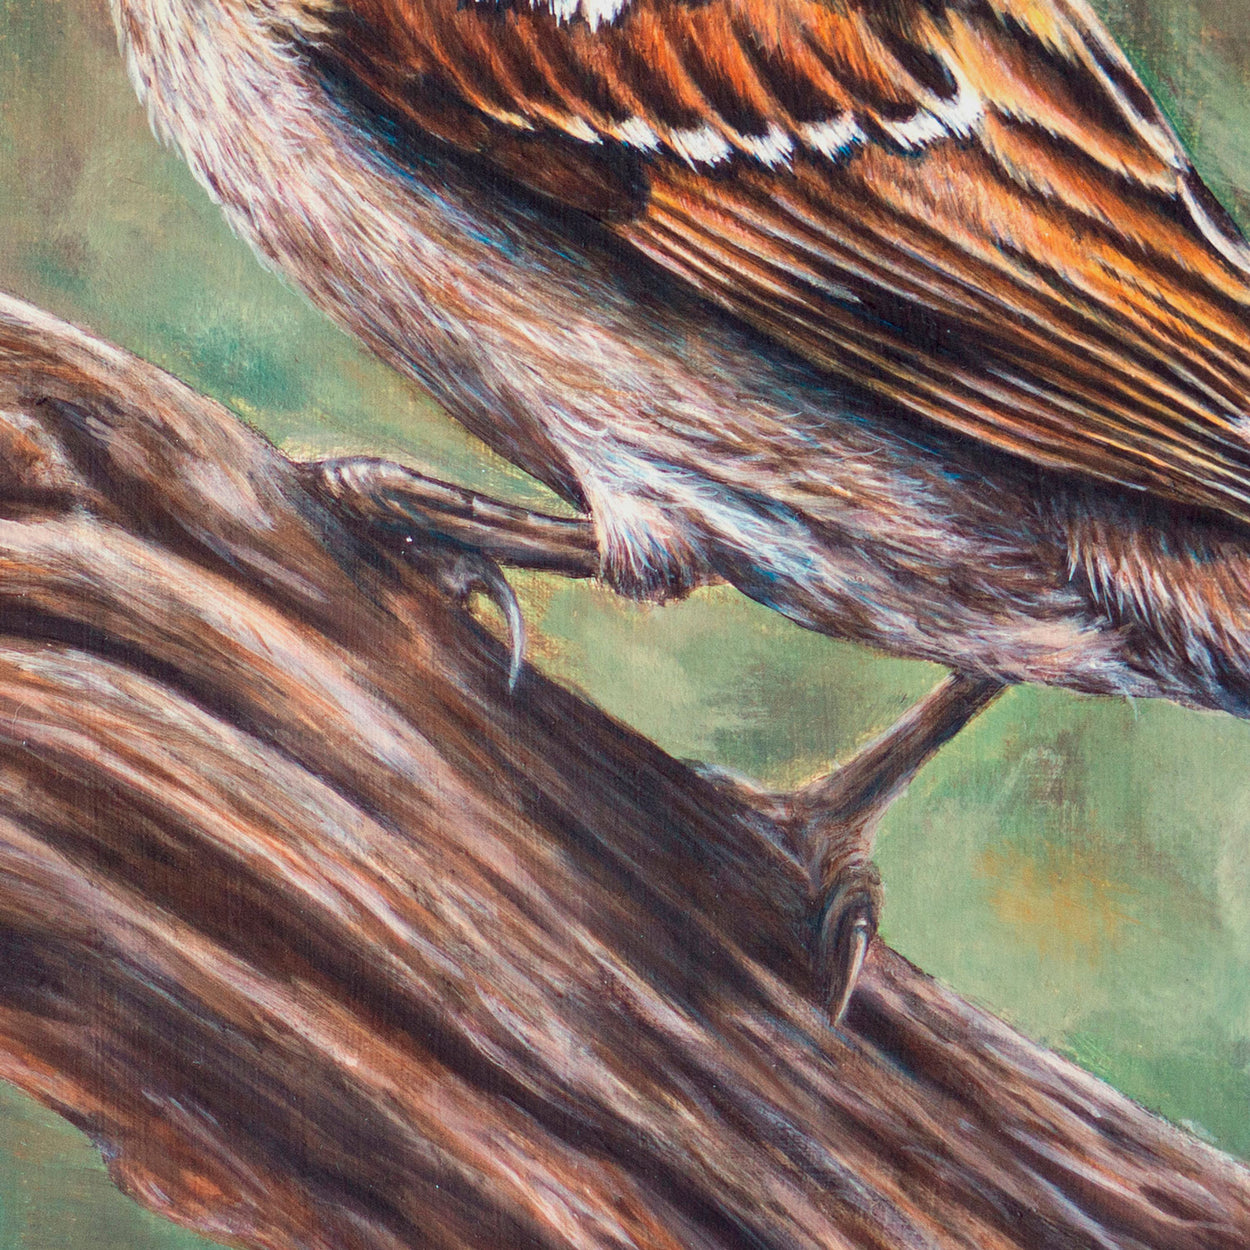 Tree Sparrow Painting Close-up 2 - The Thriving Wild